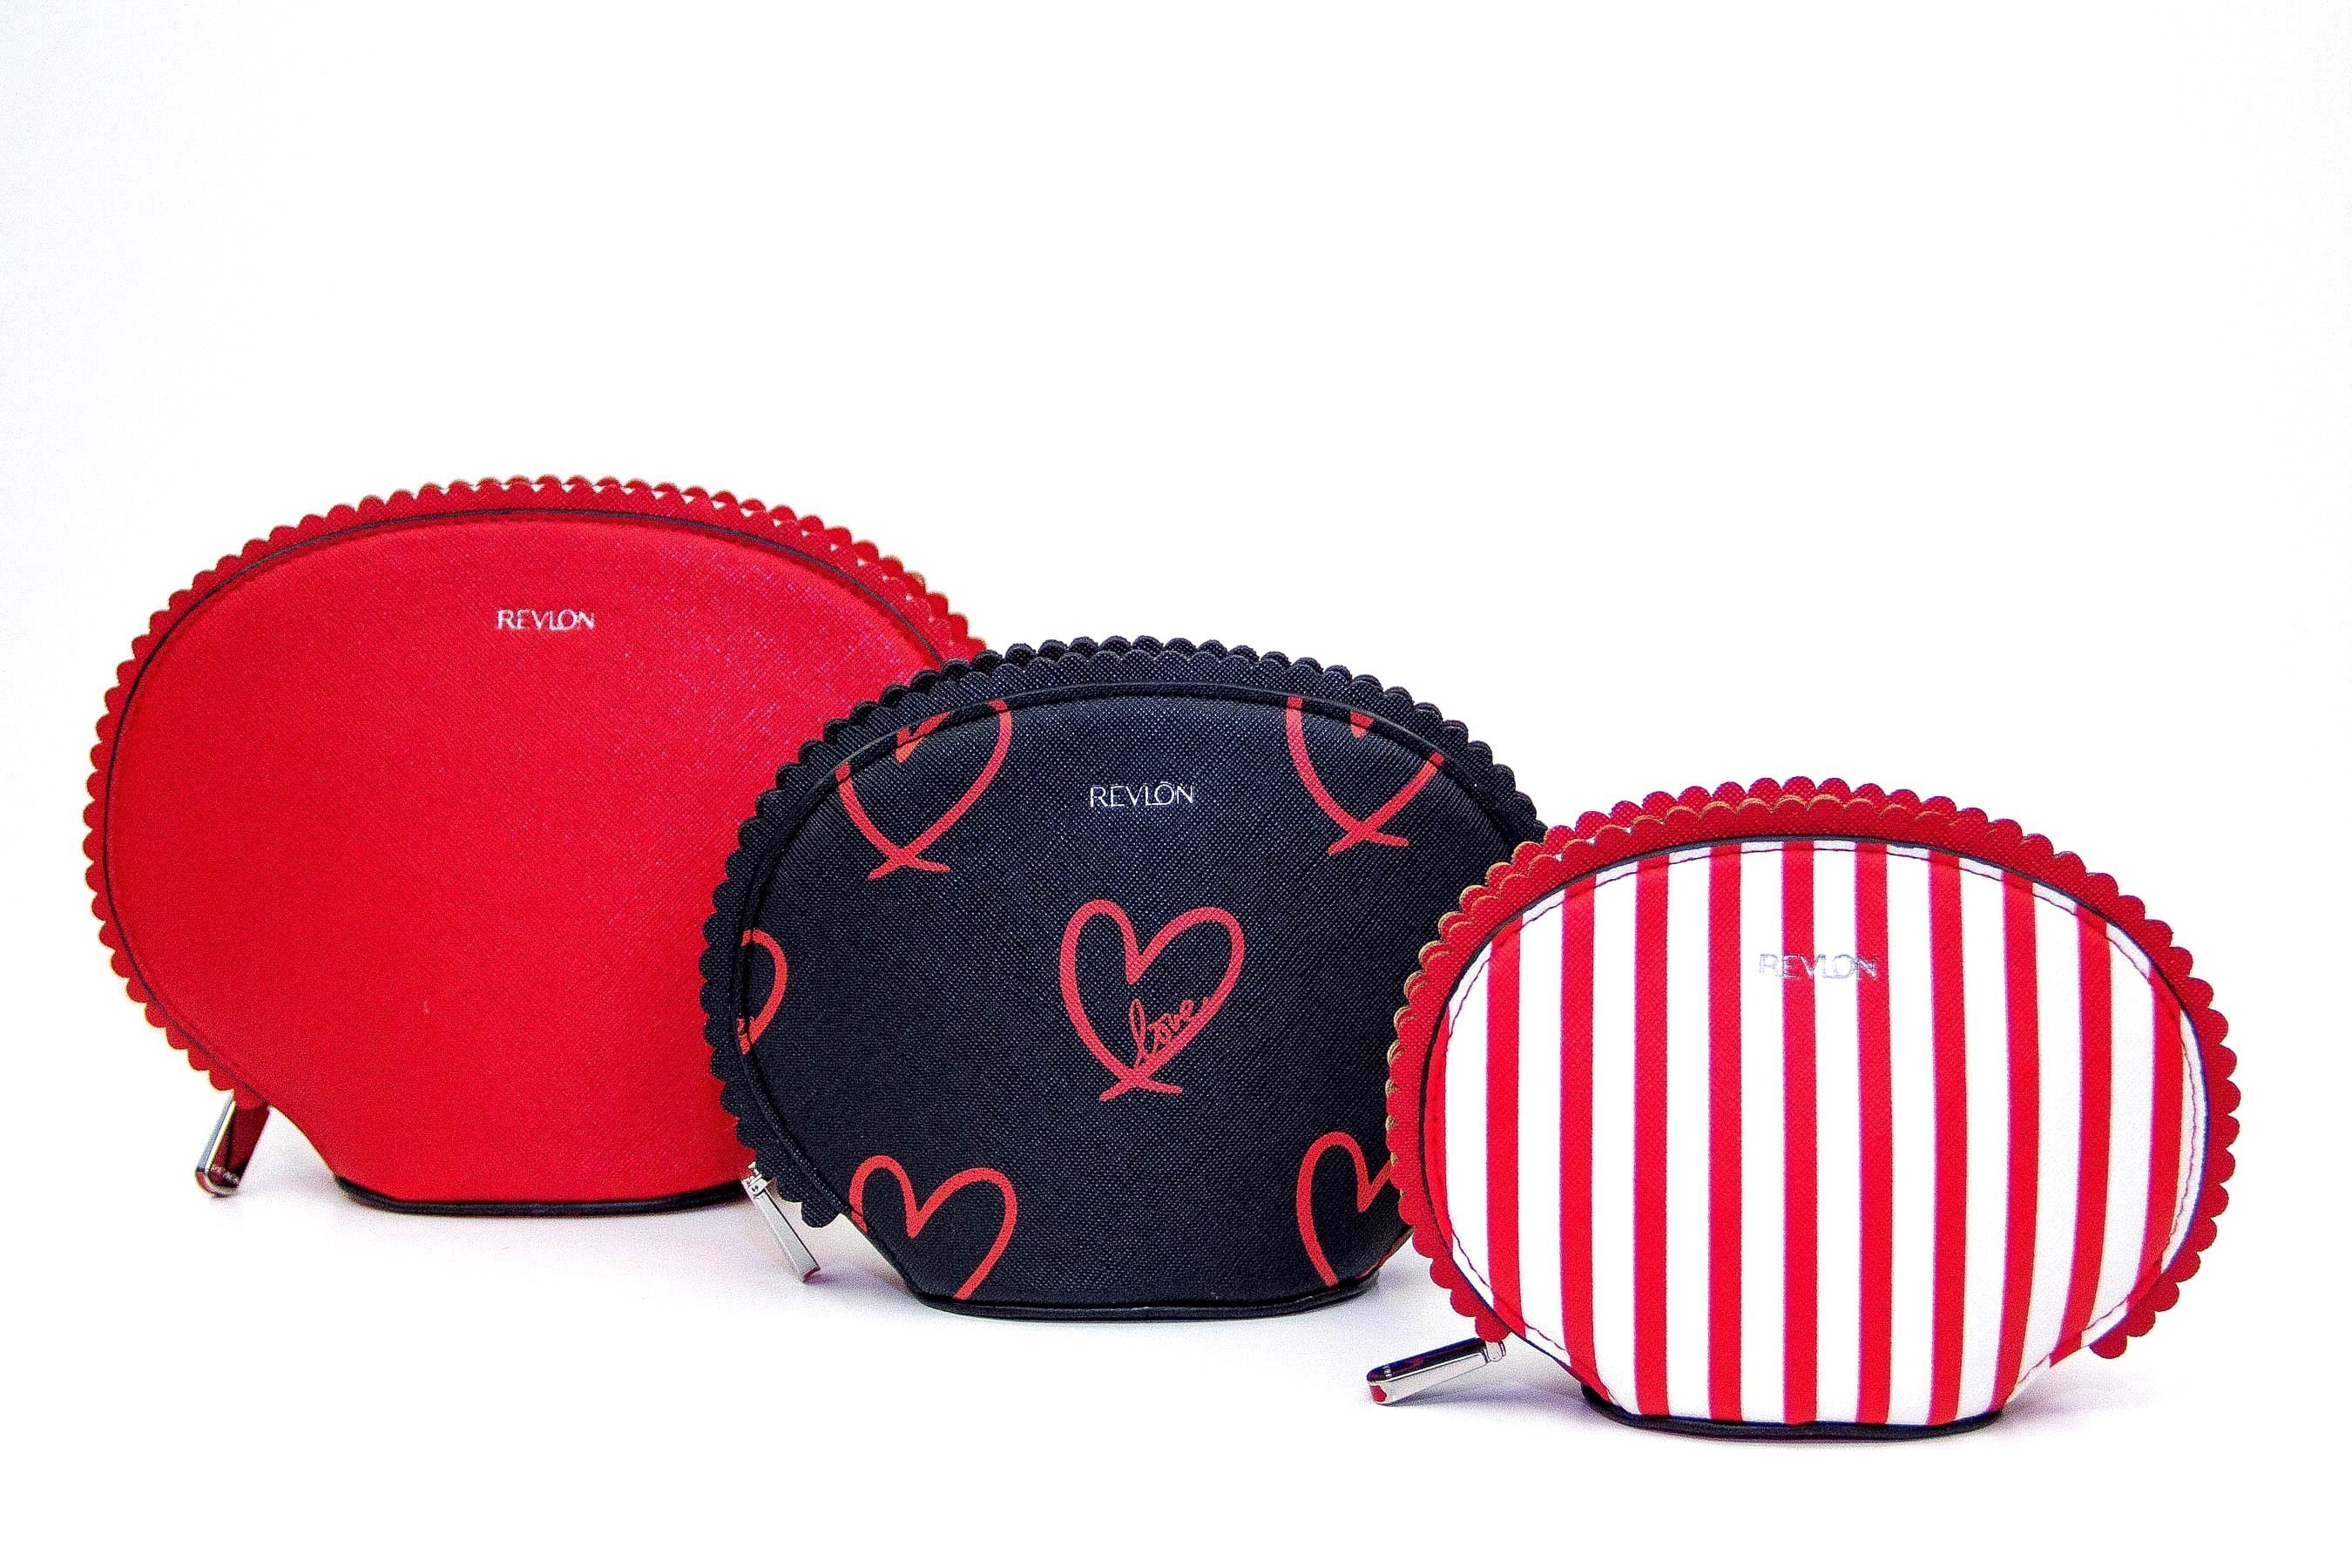 Revlon Cosmetic Bags by AHQ - Accessory Headquarters